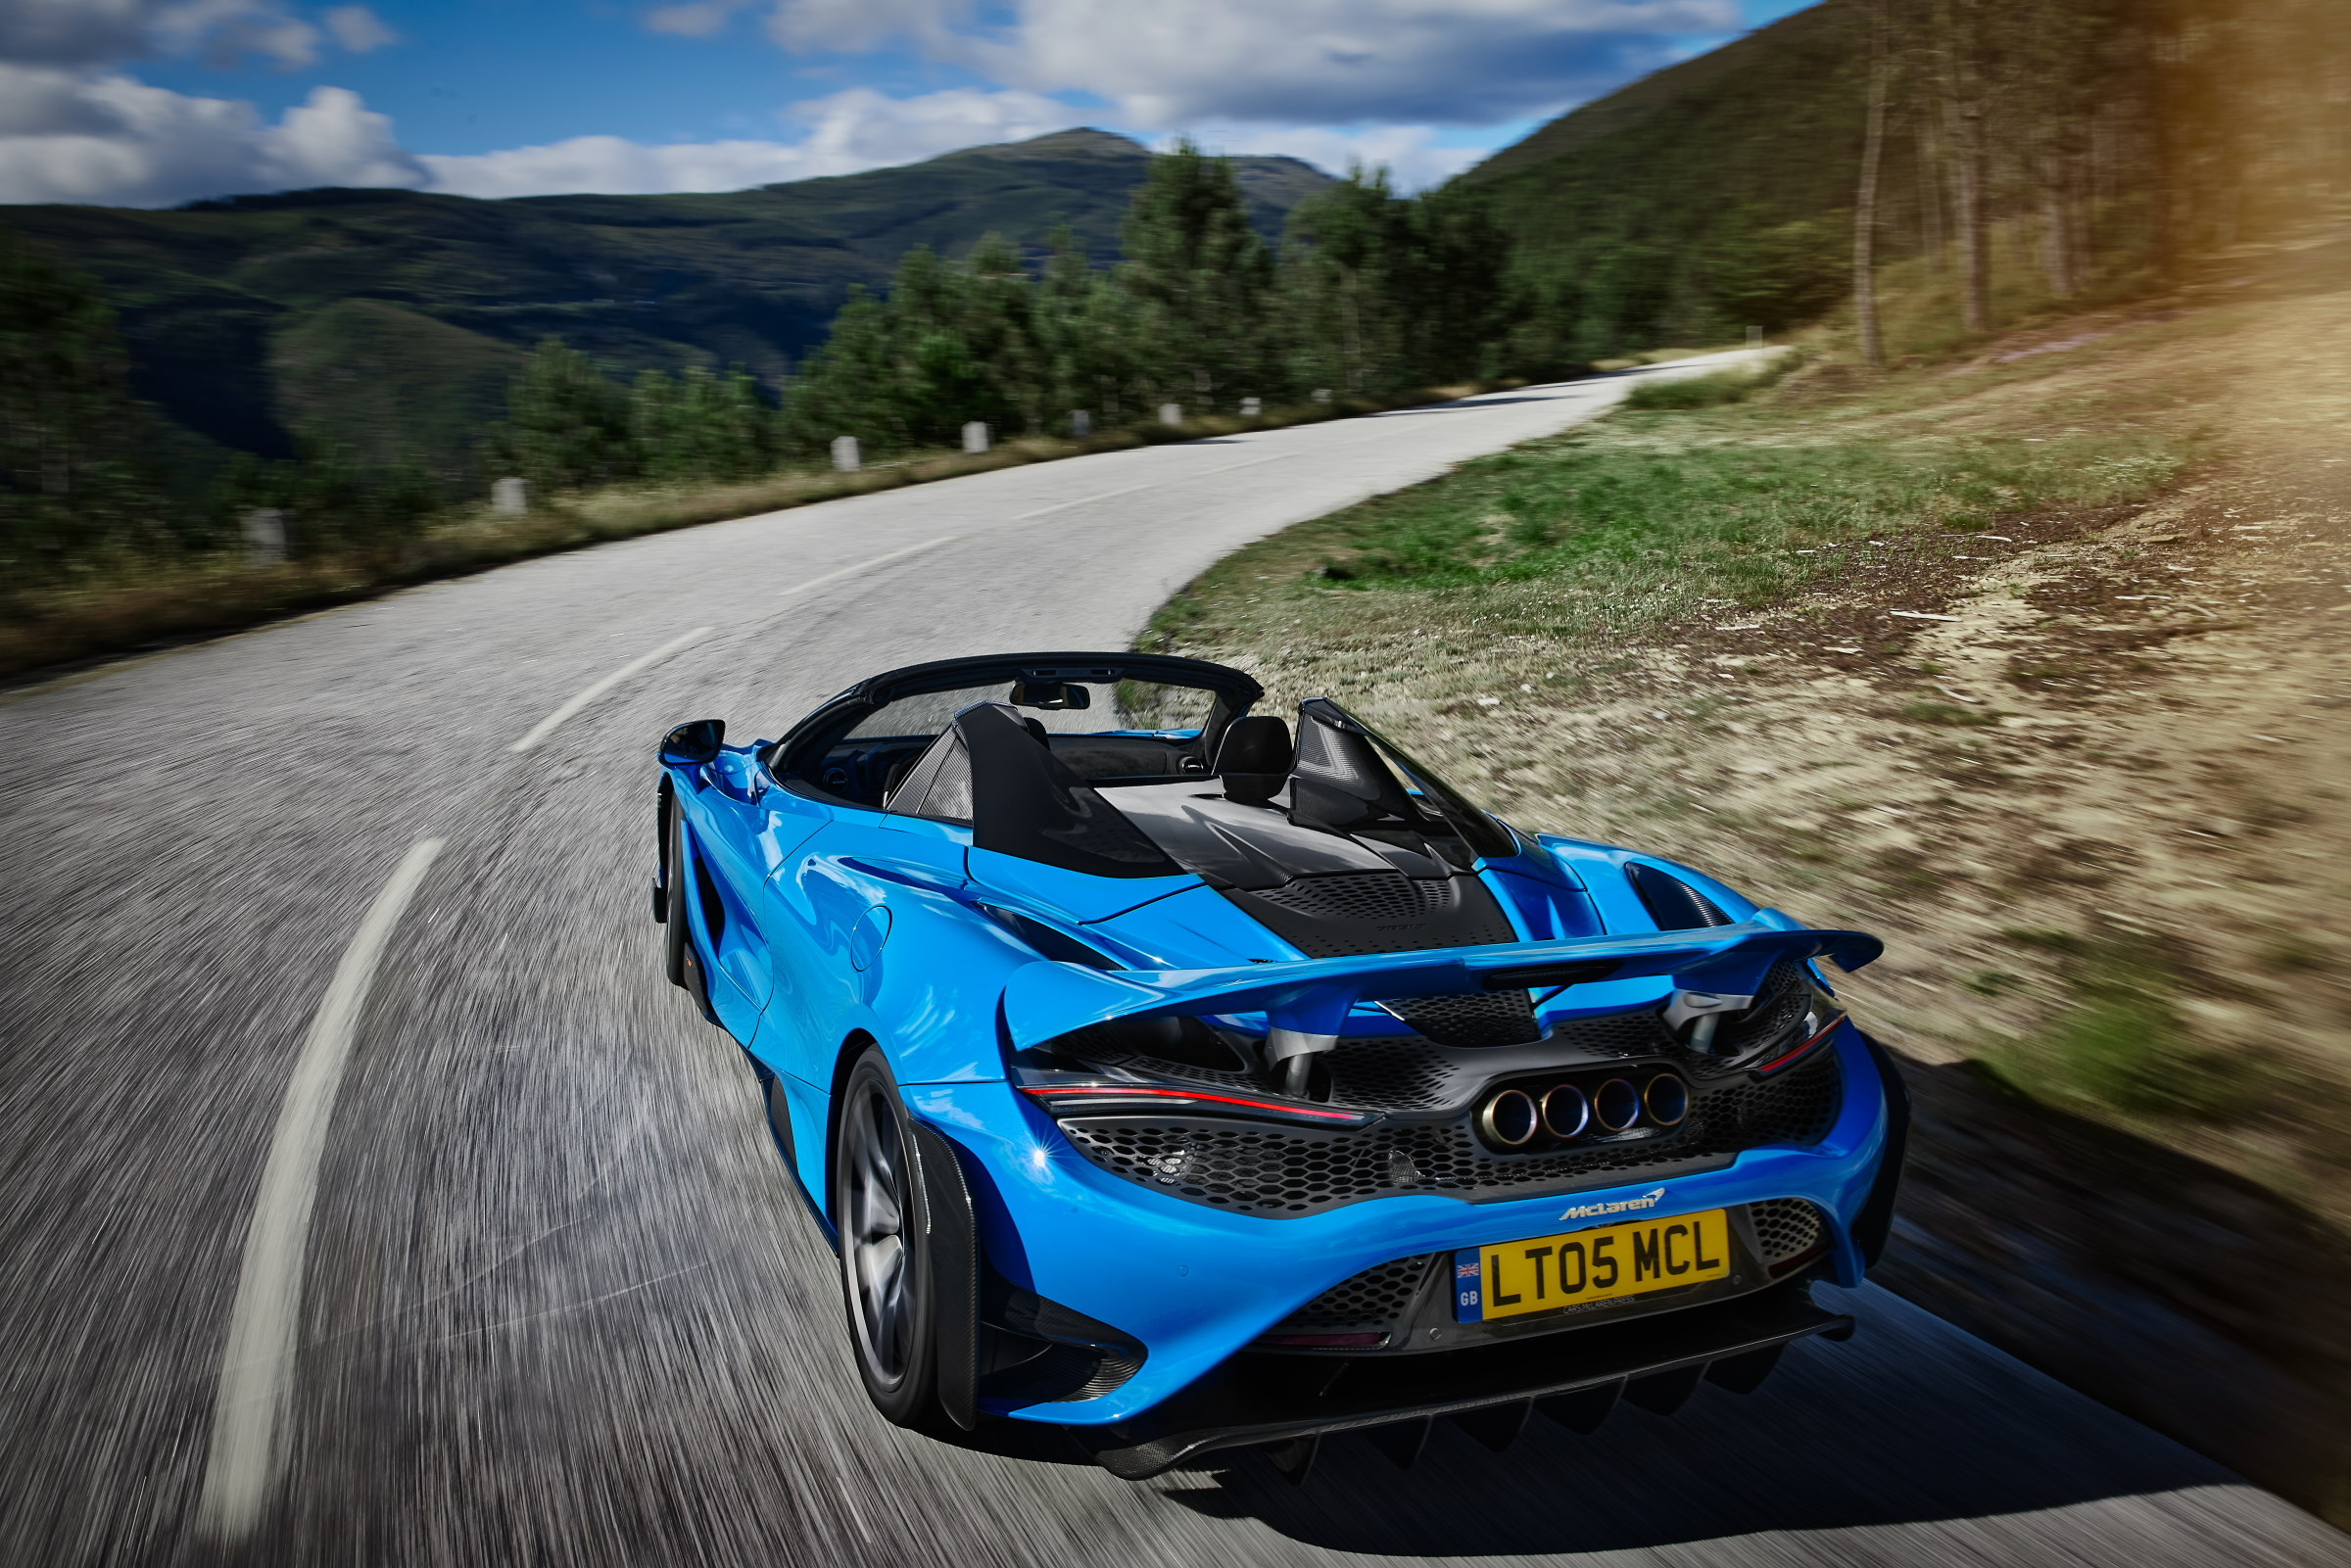 McLaren Has Just Revealed Its Powerful Convertible Supercar – The 765LT Spider